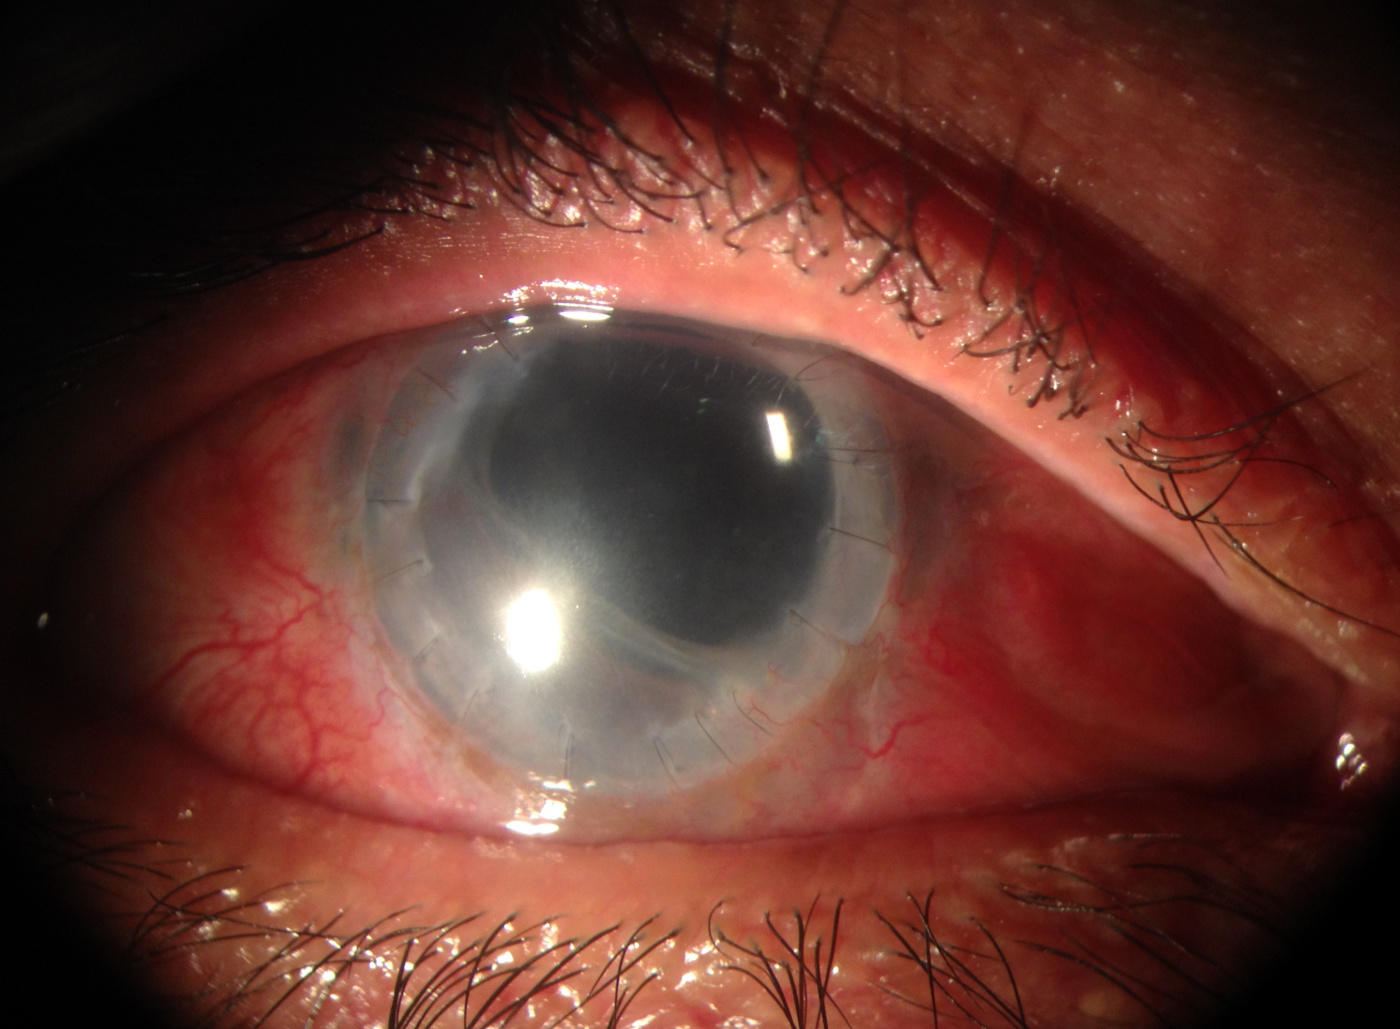 Anterior aspect of the eye showing the large diameter penetrating keratoplasty with the sutures still present